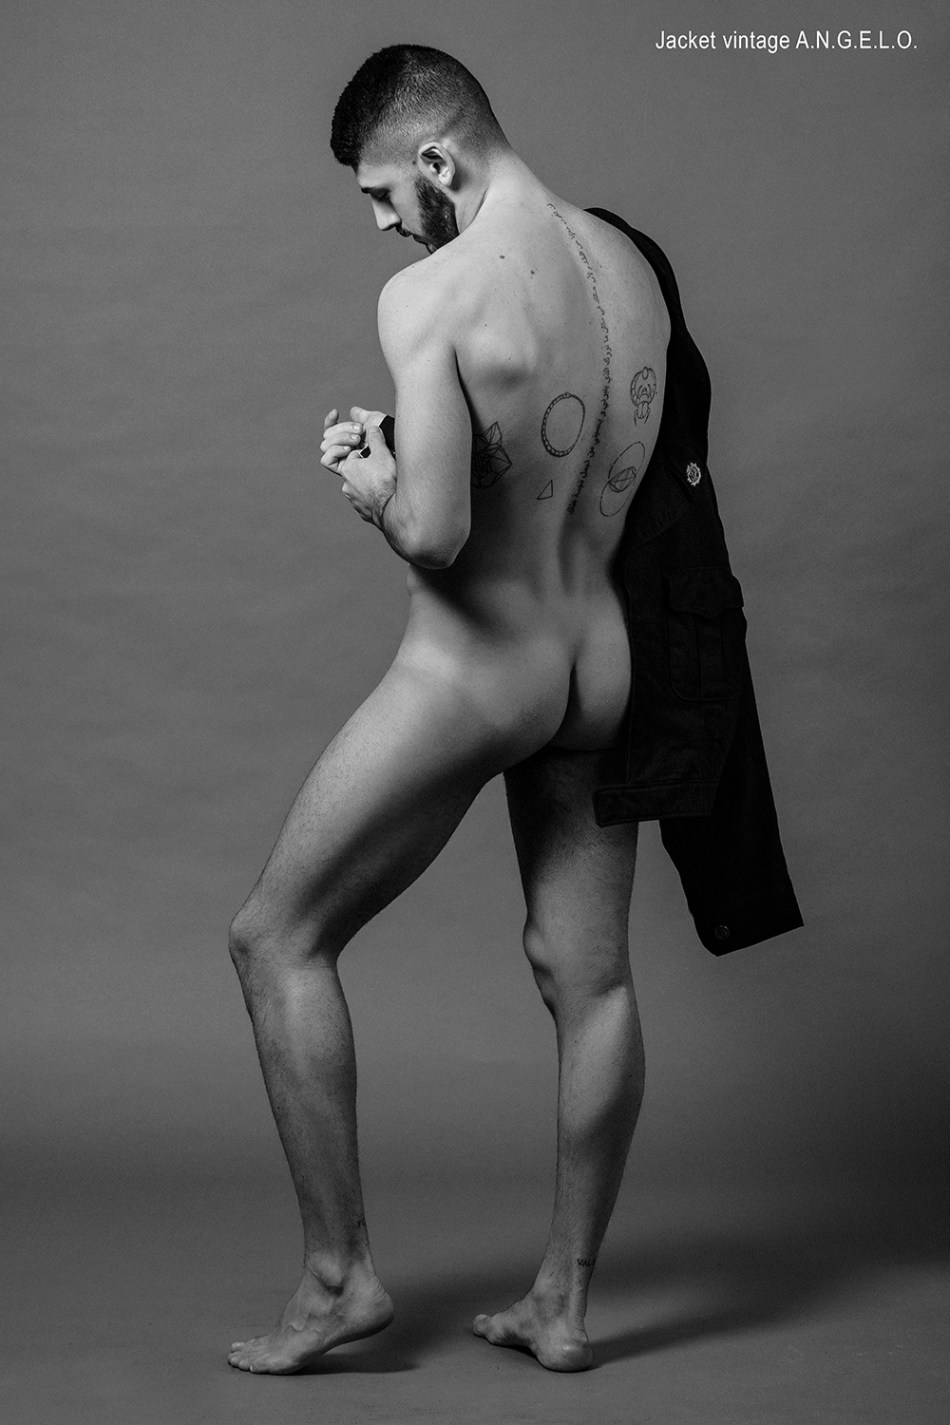 Here's hunk model Michele Miccoli a finest quality Italian pure hunk, posing for the lens of Alisson Marks and styled by fashionista Stefano Guerrini.